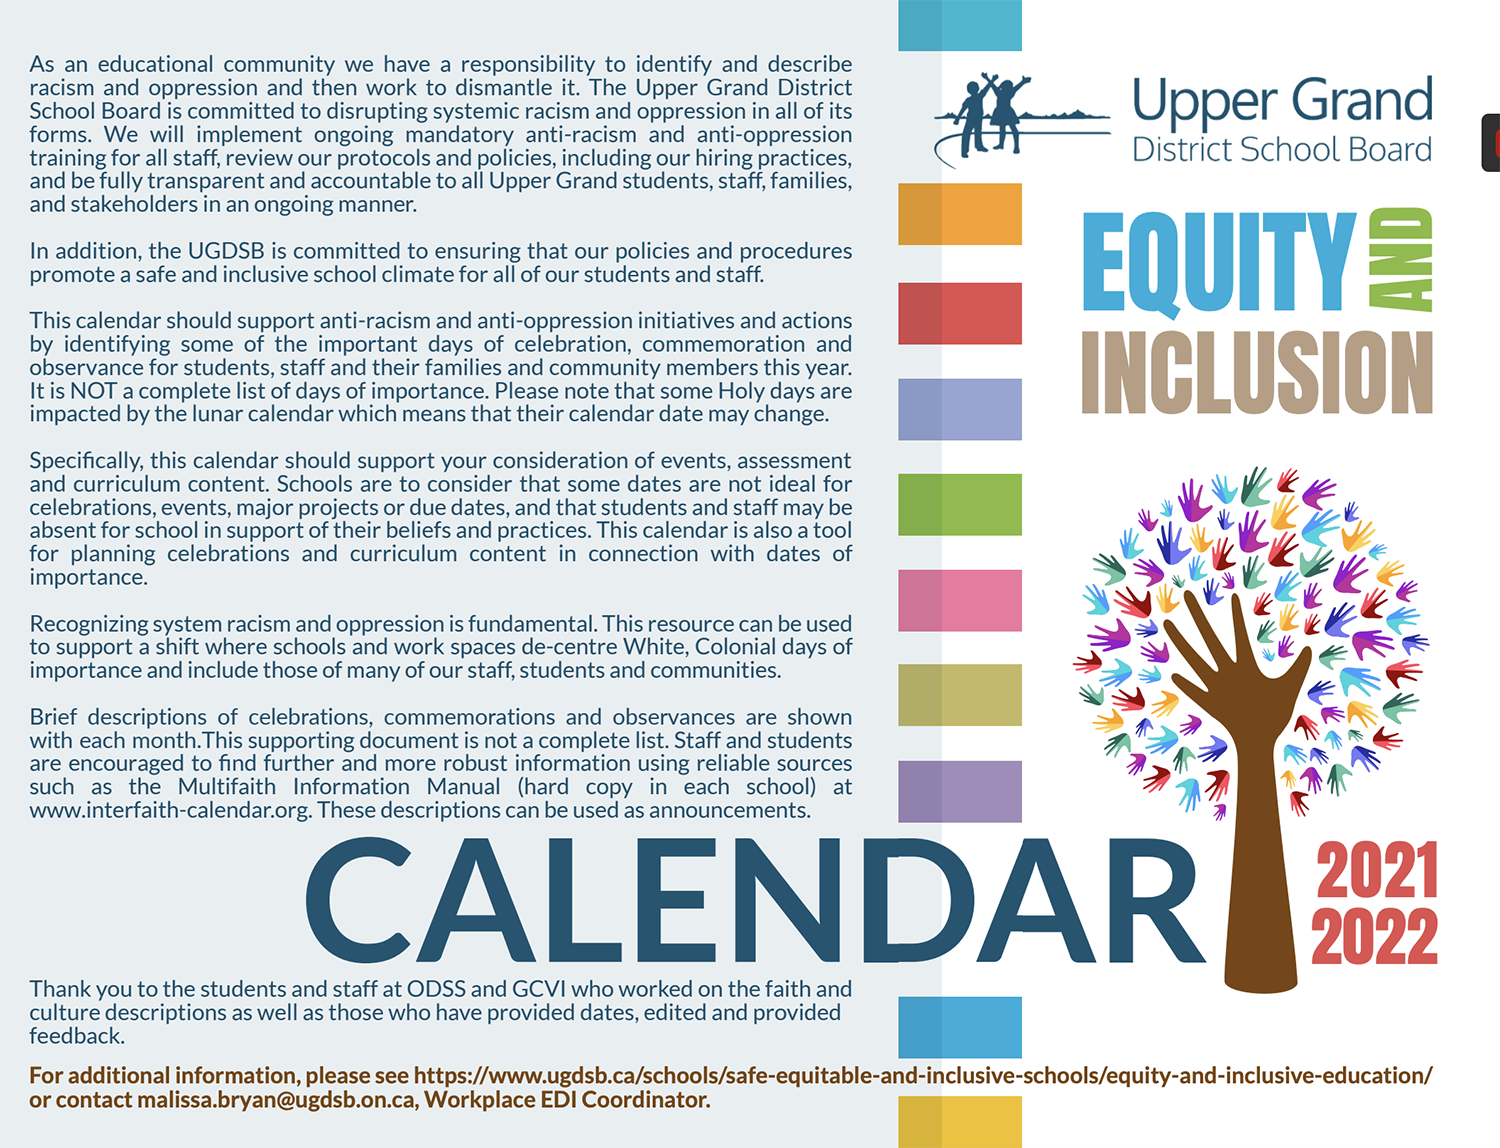 Equity And Inclusion Calendar